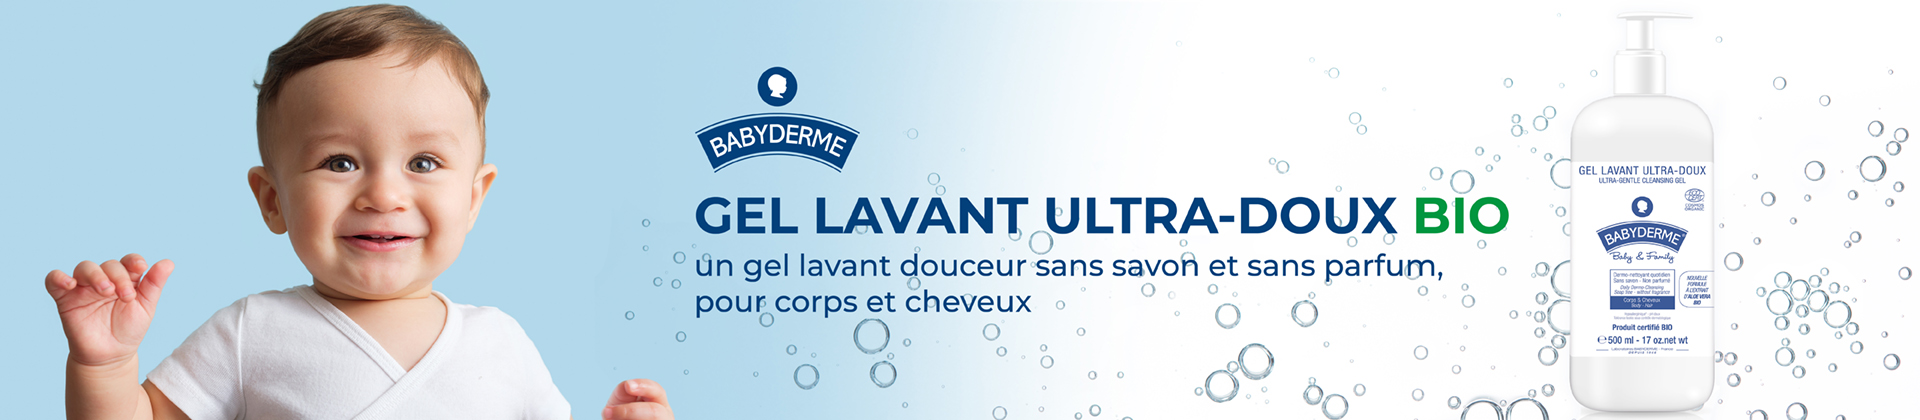 header gel lavant ultra doux bio babyderme